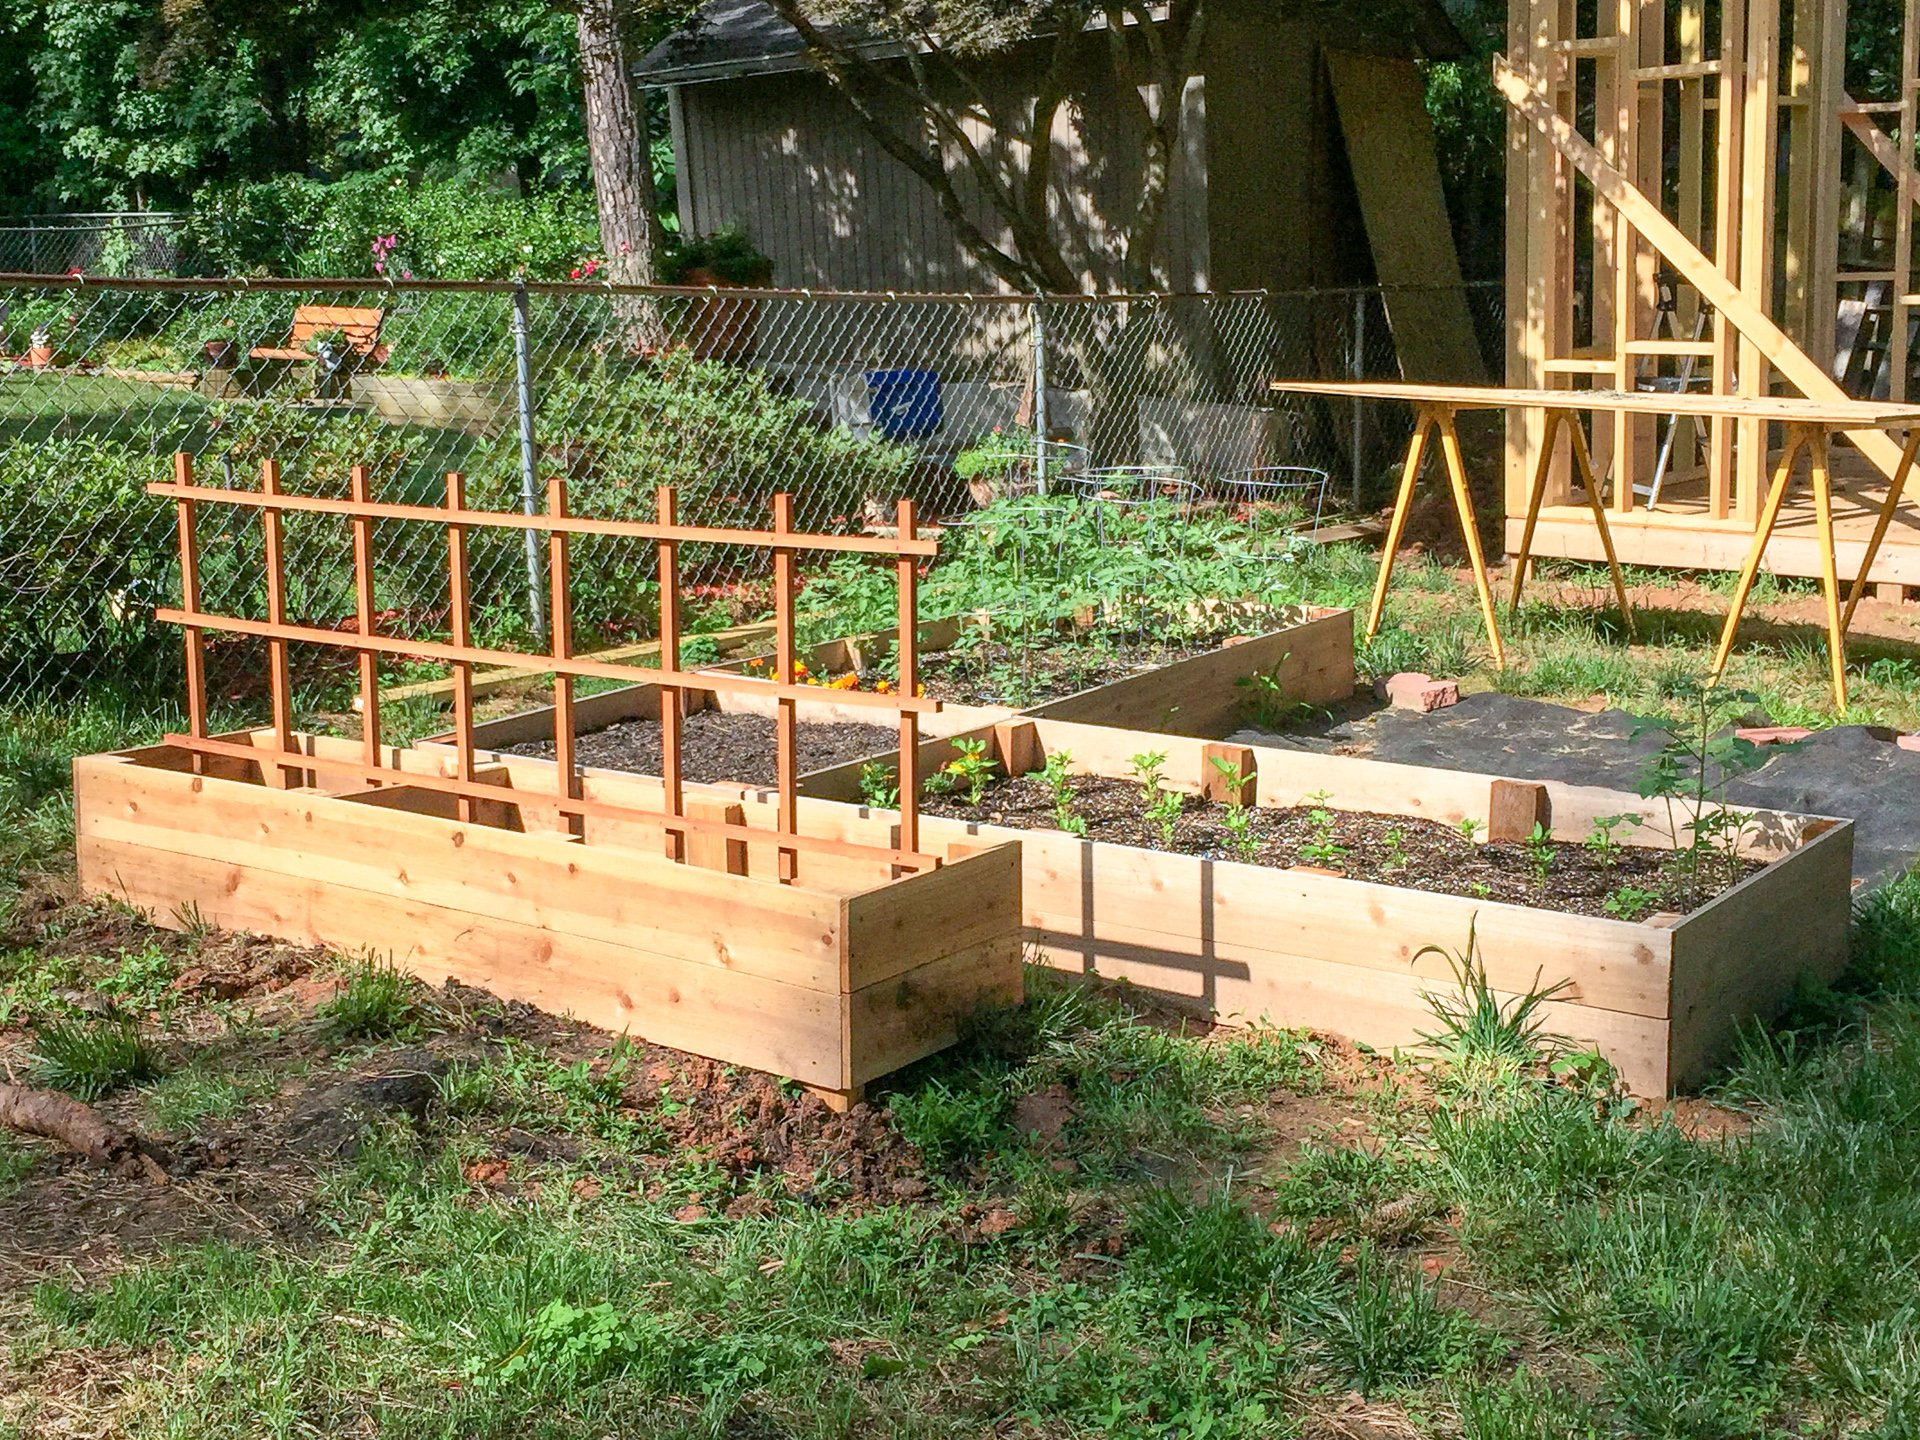 New garden bed area with cucumber trellis - shed frame in the background